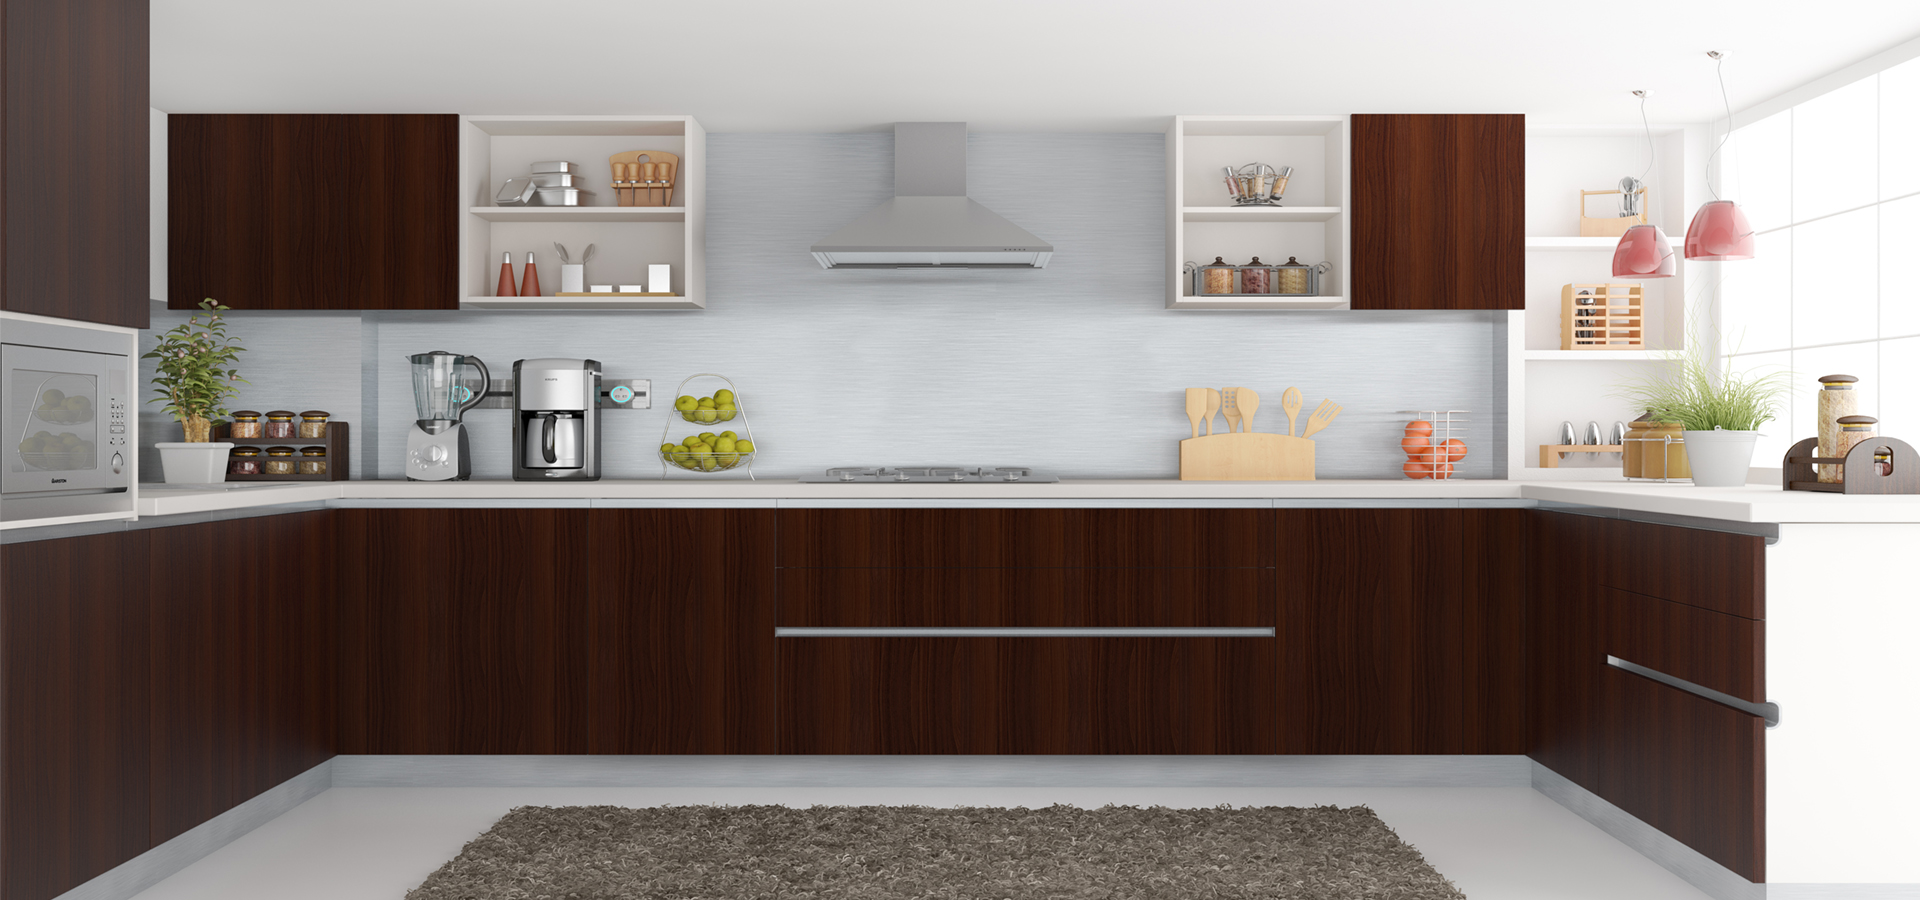 <h2>KITCHEN DESIGN</h2><p>Functionality - Comfort - Aesthetics</p><div class='bgslideshowmore'><a href='http://www.mpirmpas.4ty.gr/more2.php?l=en&id=8479' >More...</a></div>